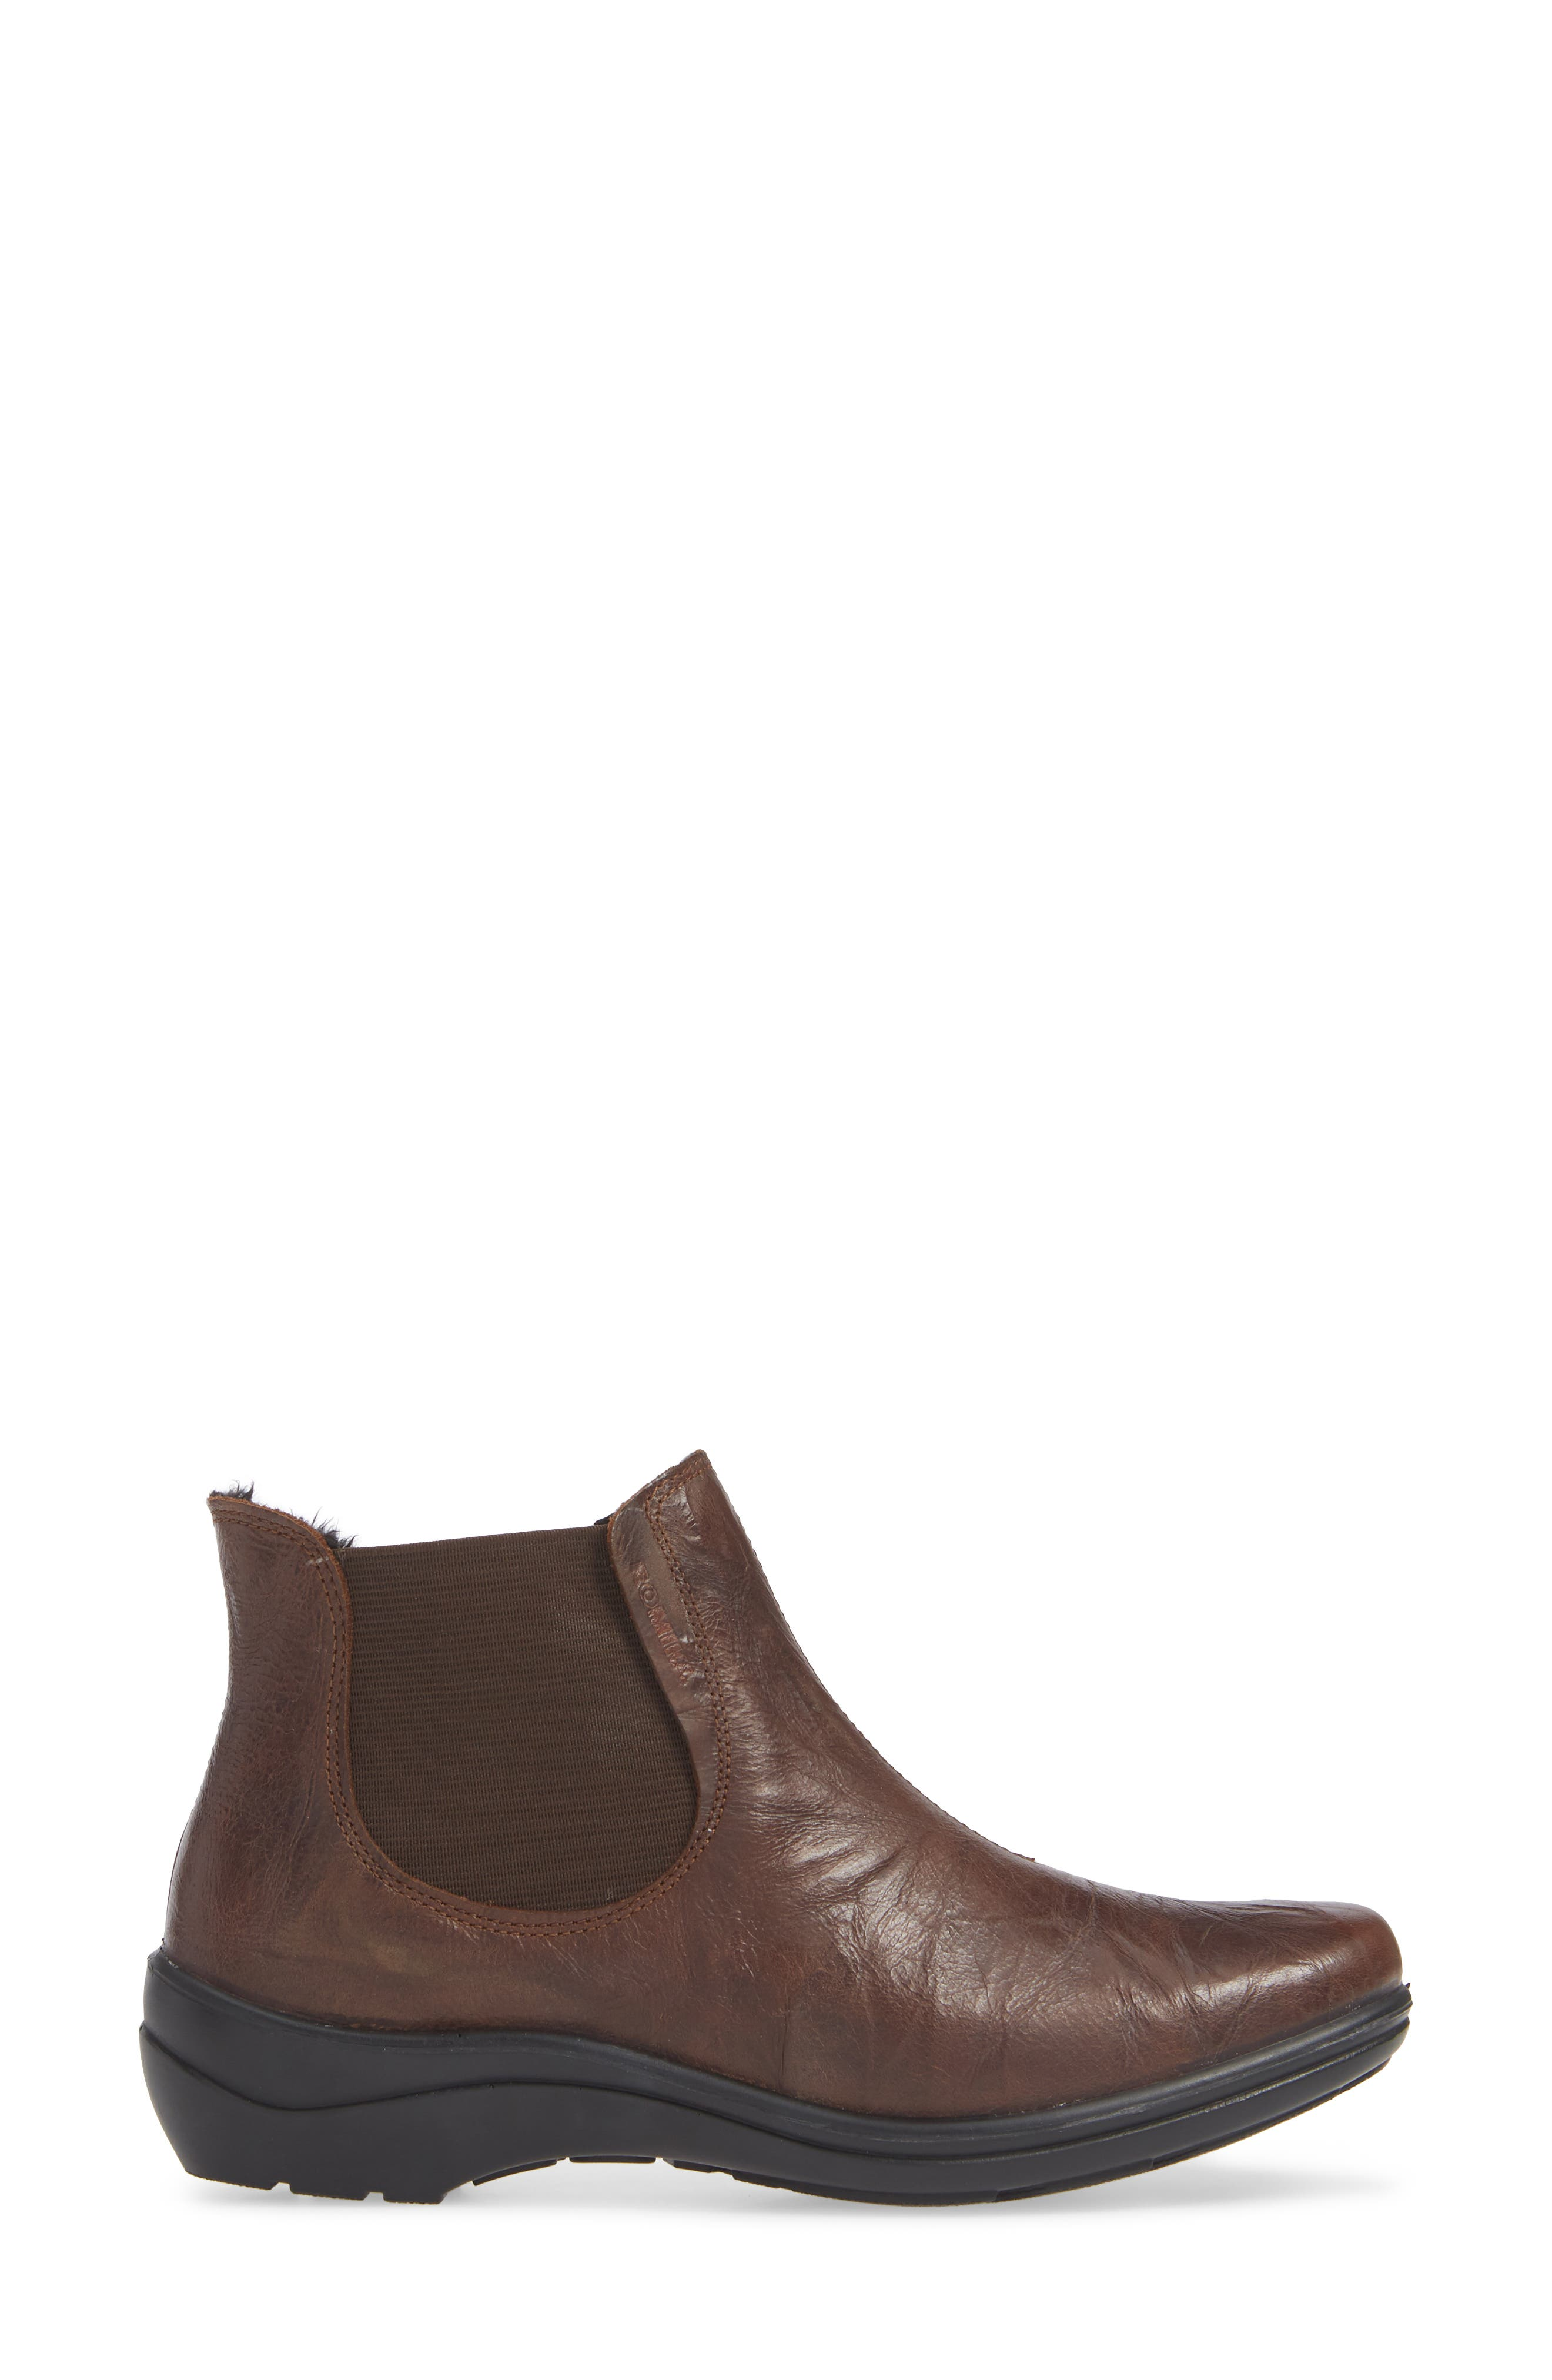 Cassie 46 Chelsea Bootie,                             Alternate thumbnail 3, color,                             BROWN LEATHER